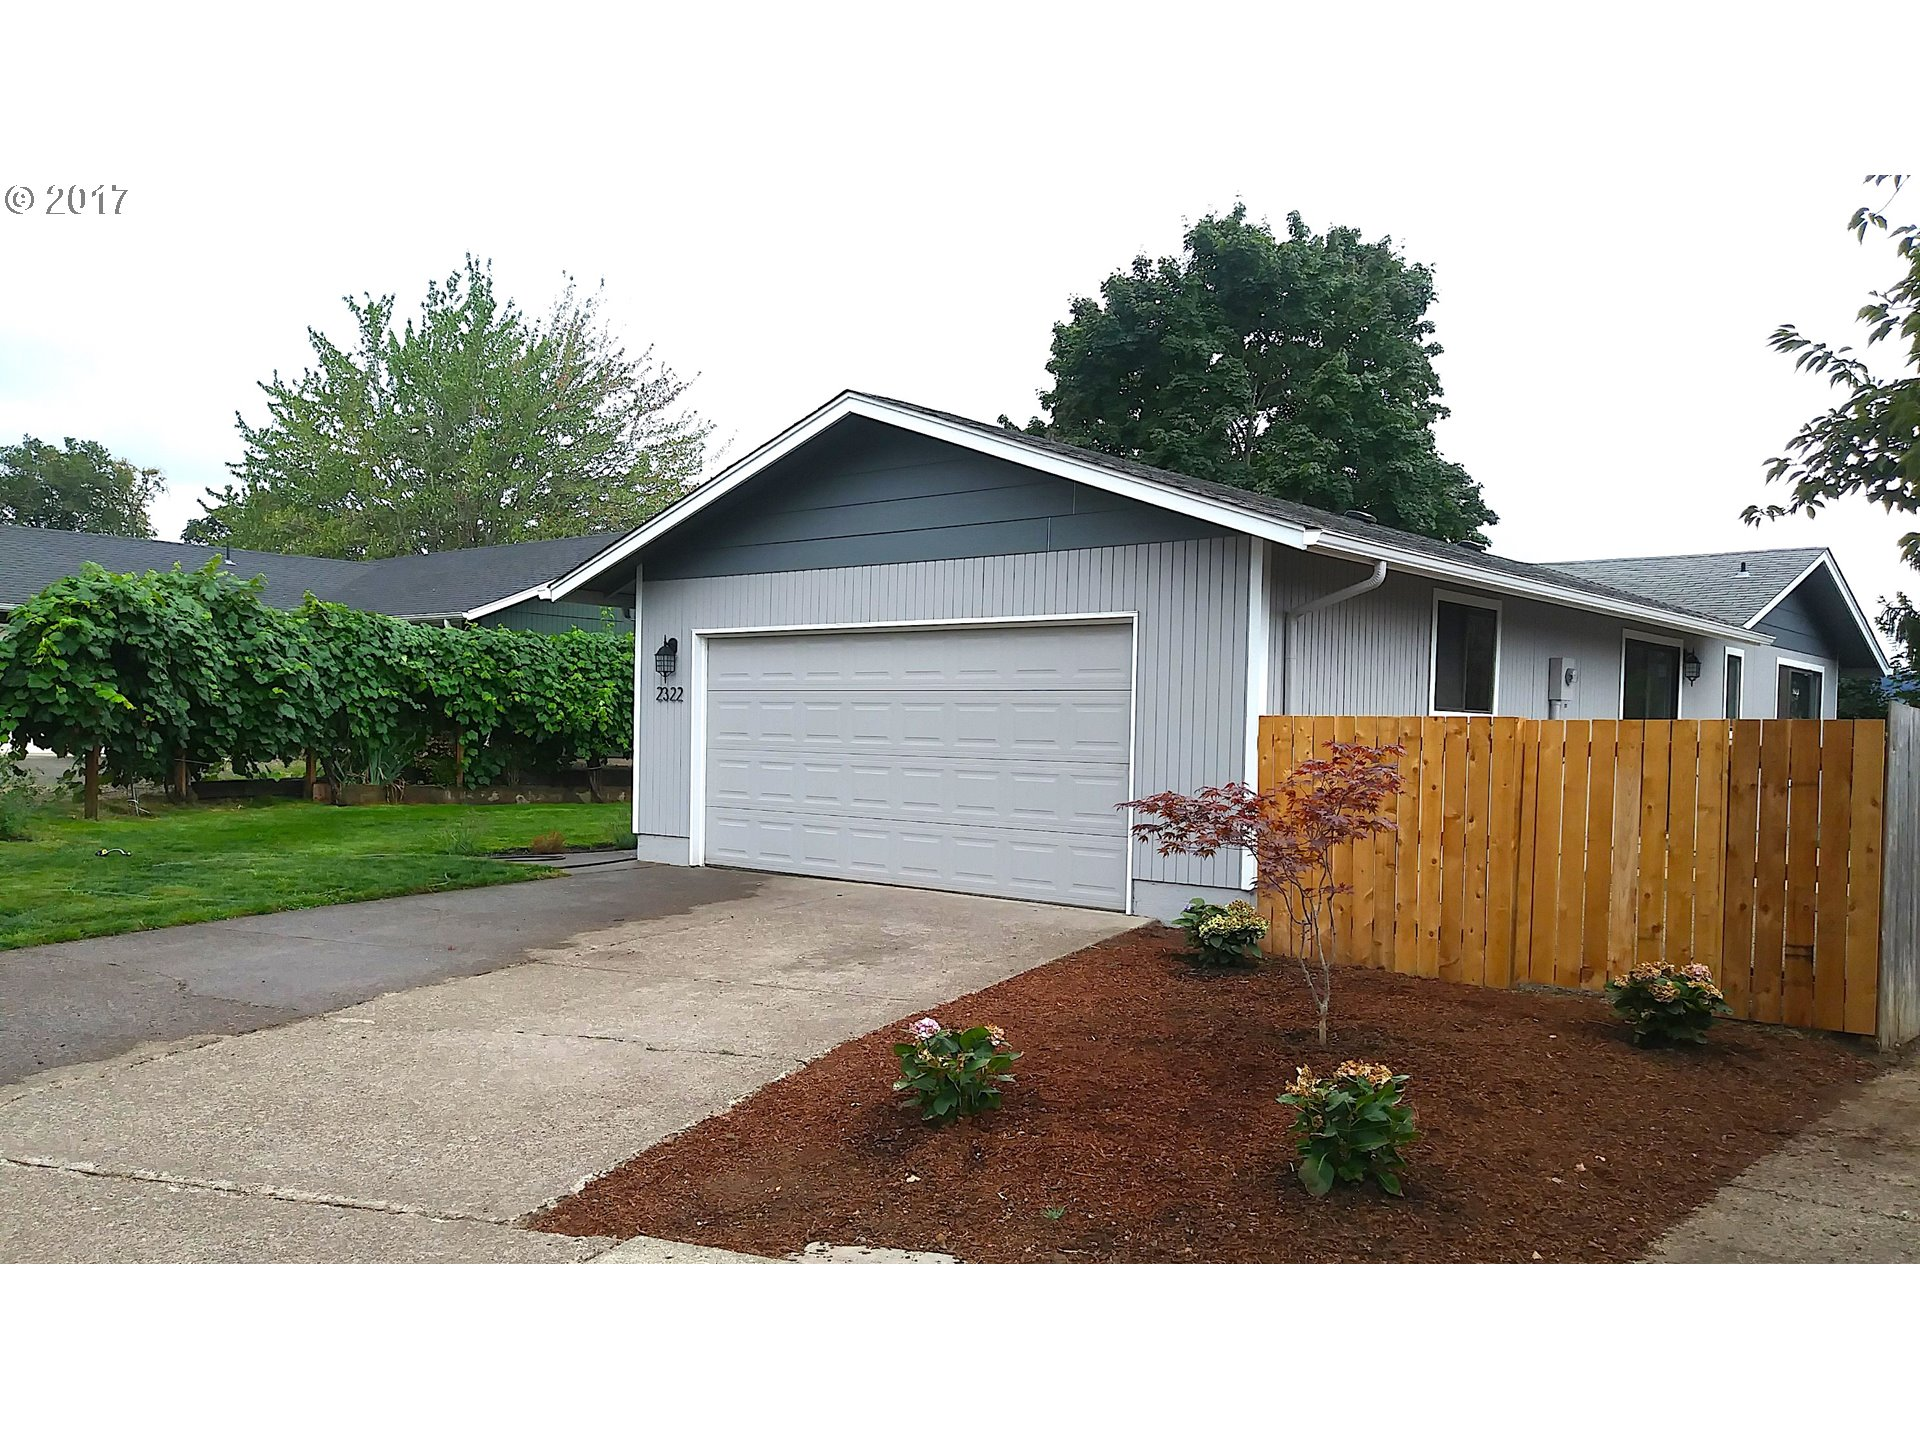 2322 PARLIAMENT ST, Eugene, OR 97405